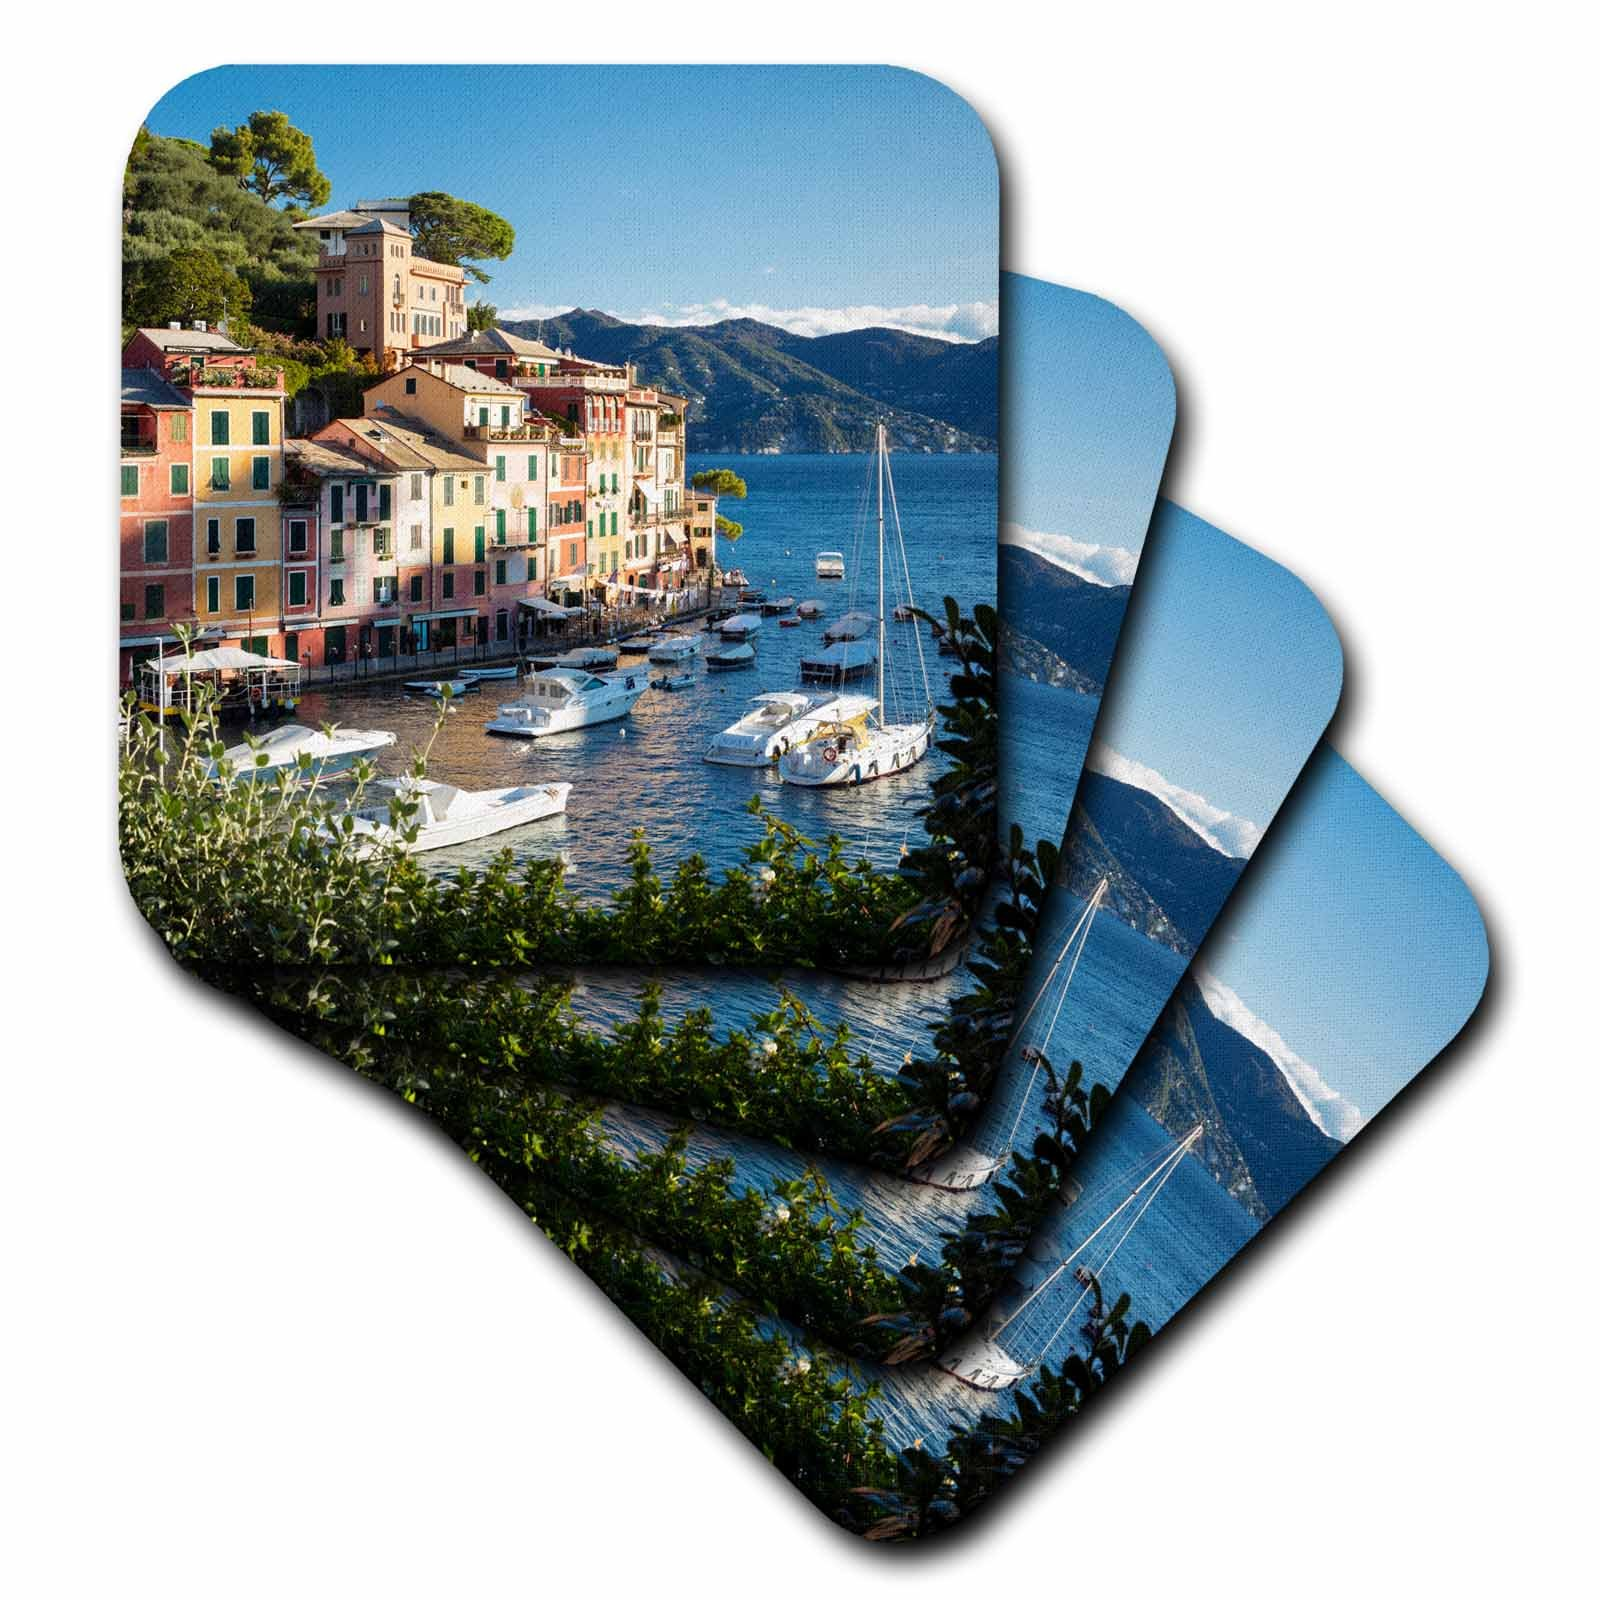 3dRose Danita Delimont - Italy - Looking out over the harbor town of Portofino, Liguria, Italy - set of 4 Coasters - Soft (cst_277565_1)